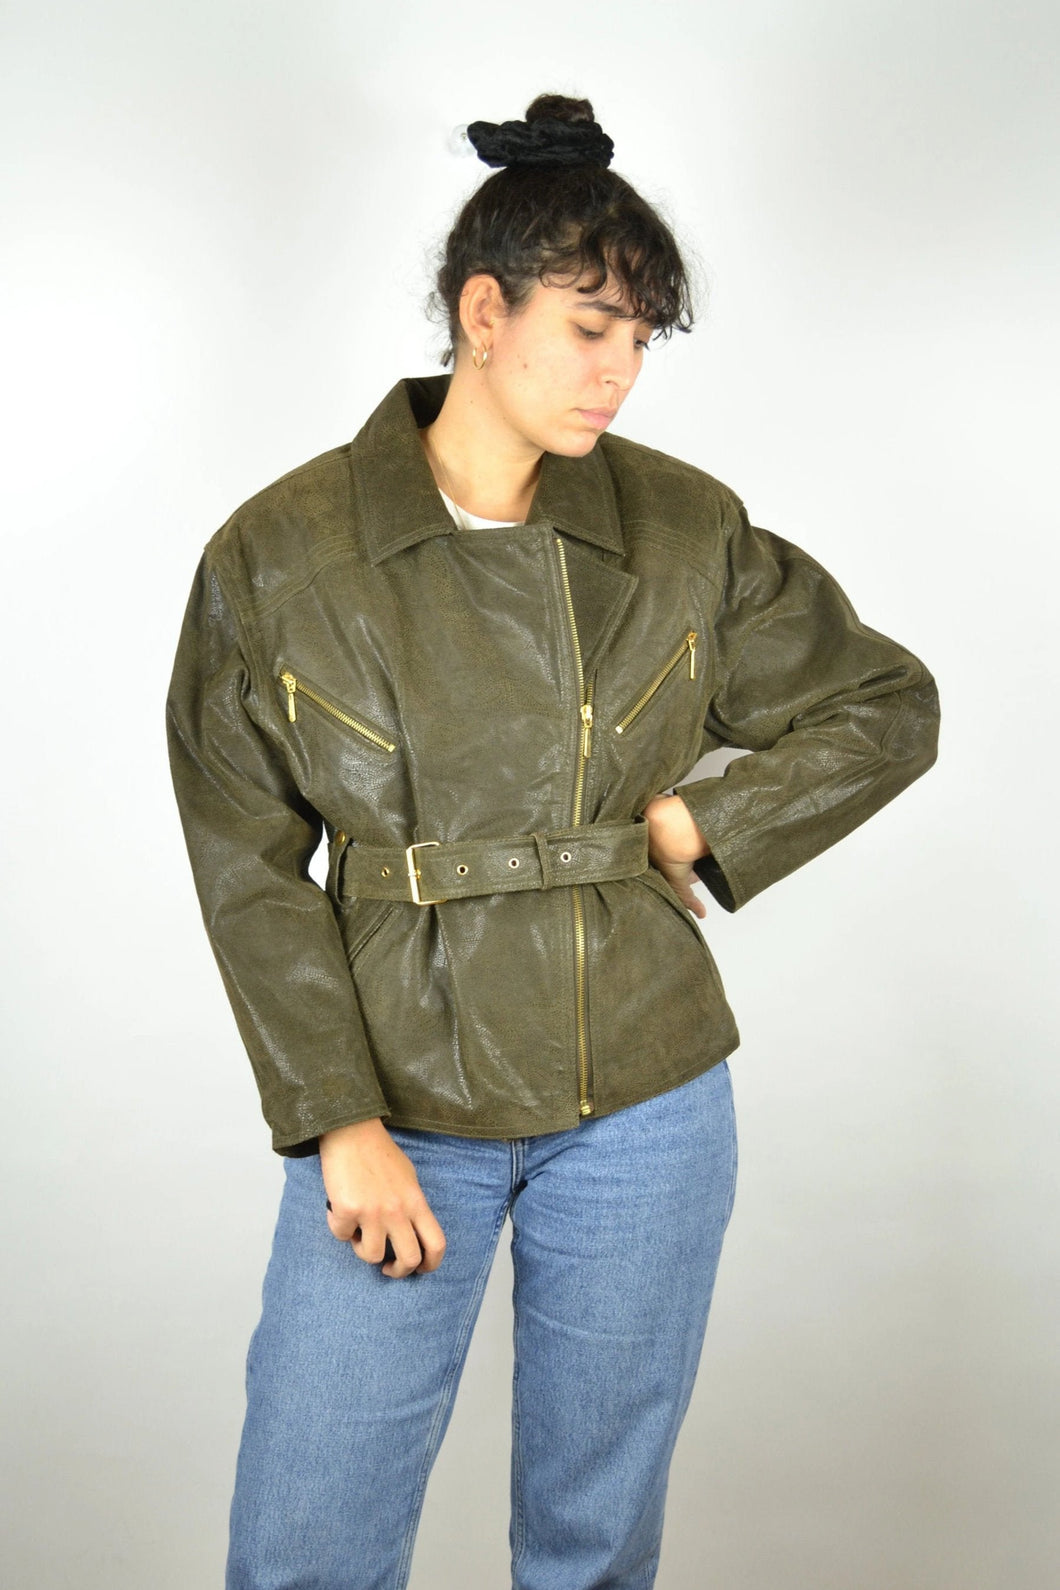 Women's Biker Leather Jacket Vintage 80s Medium M